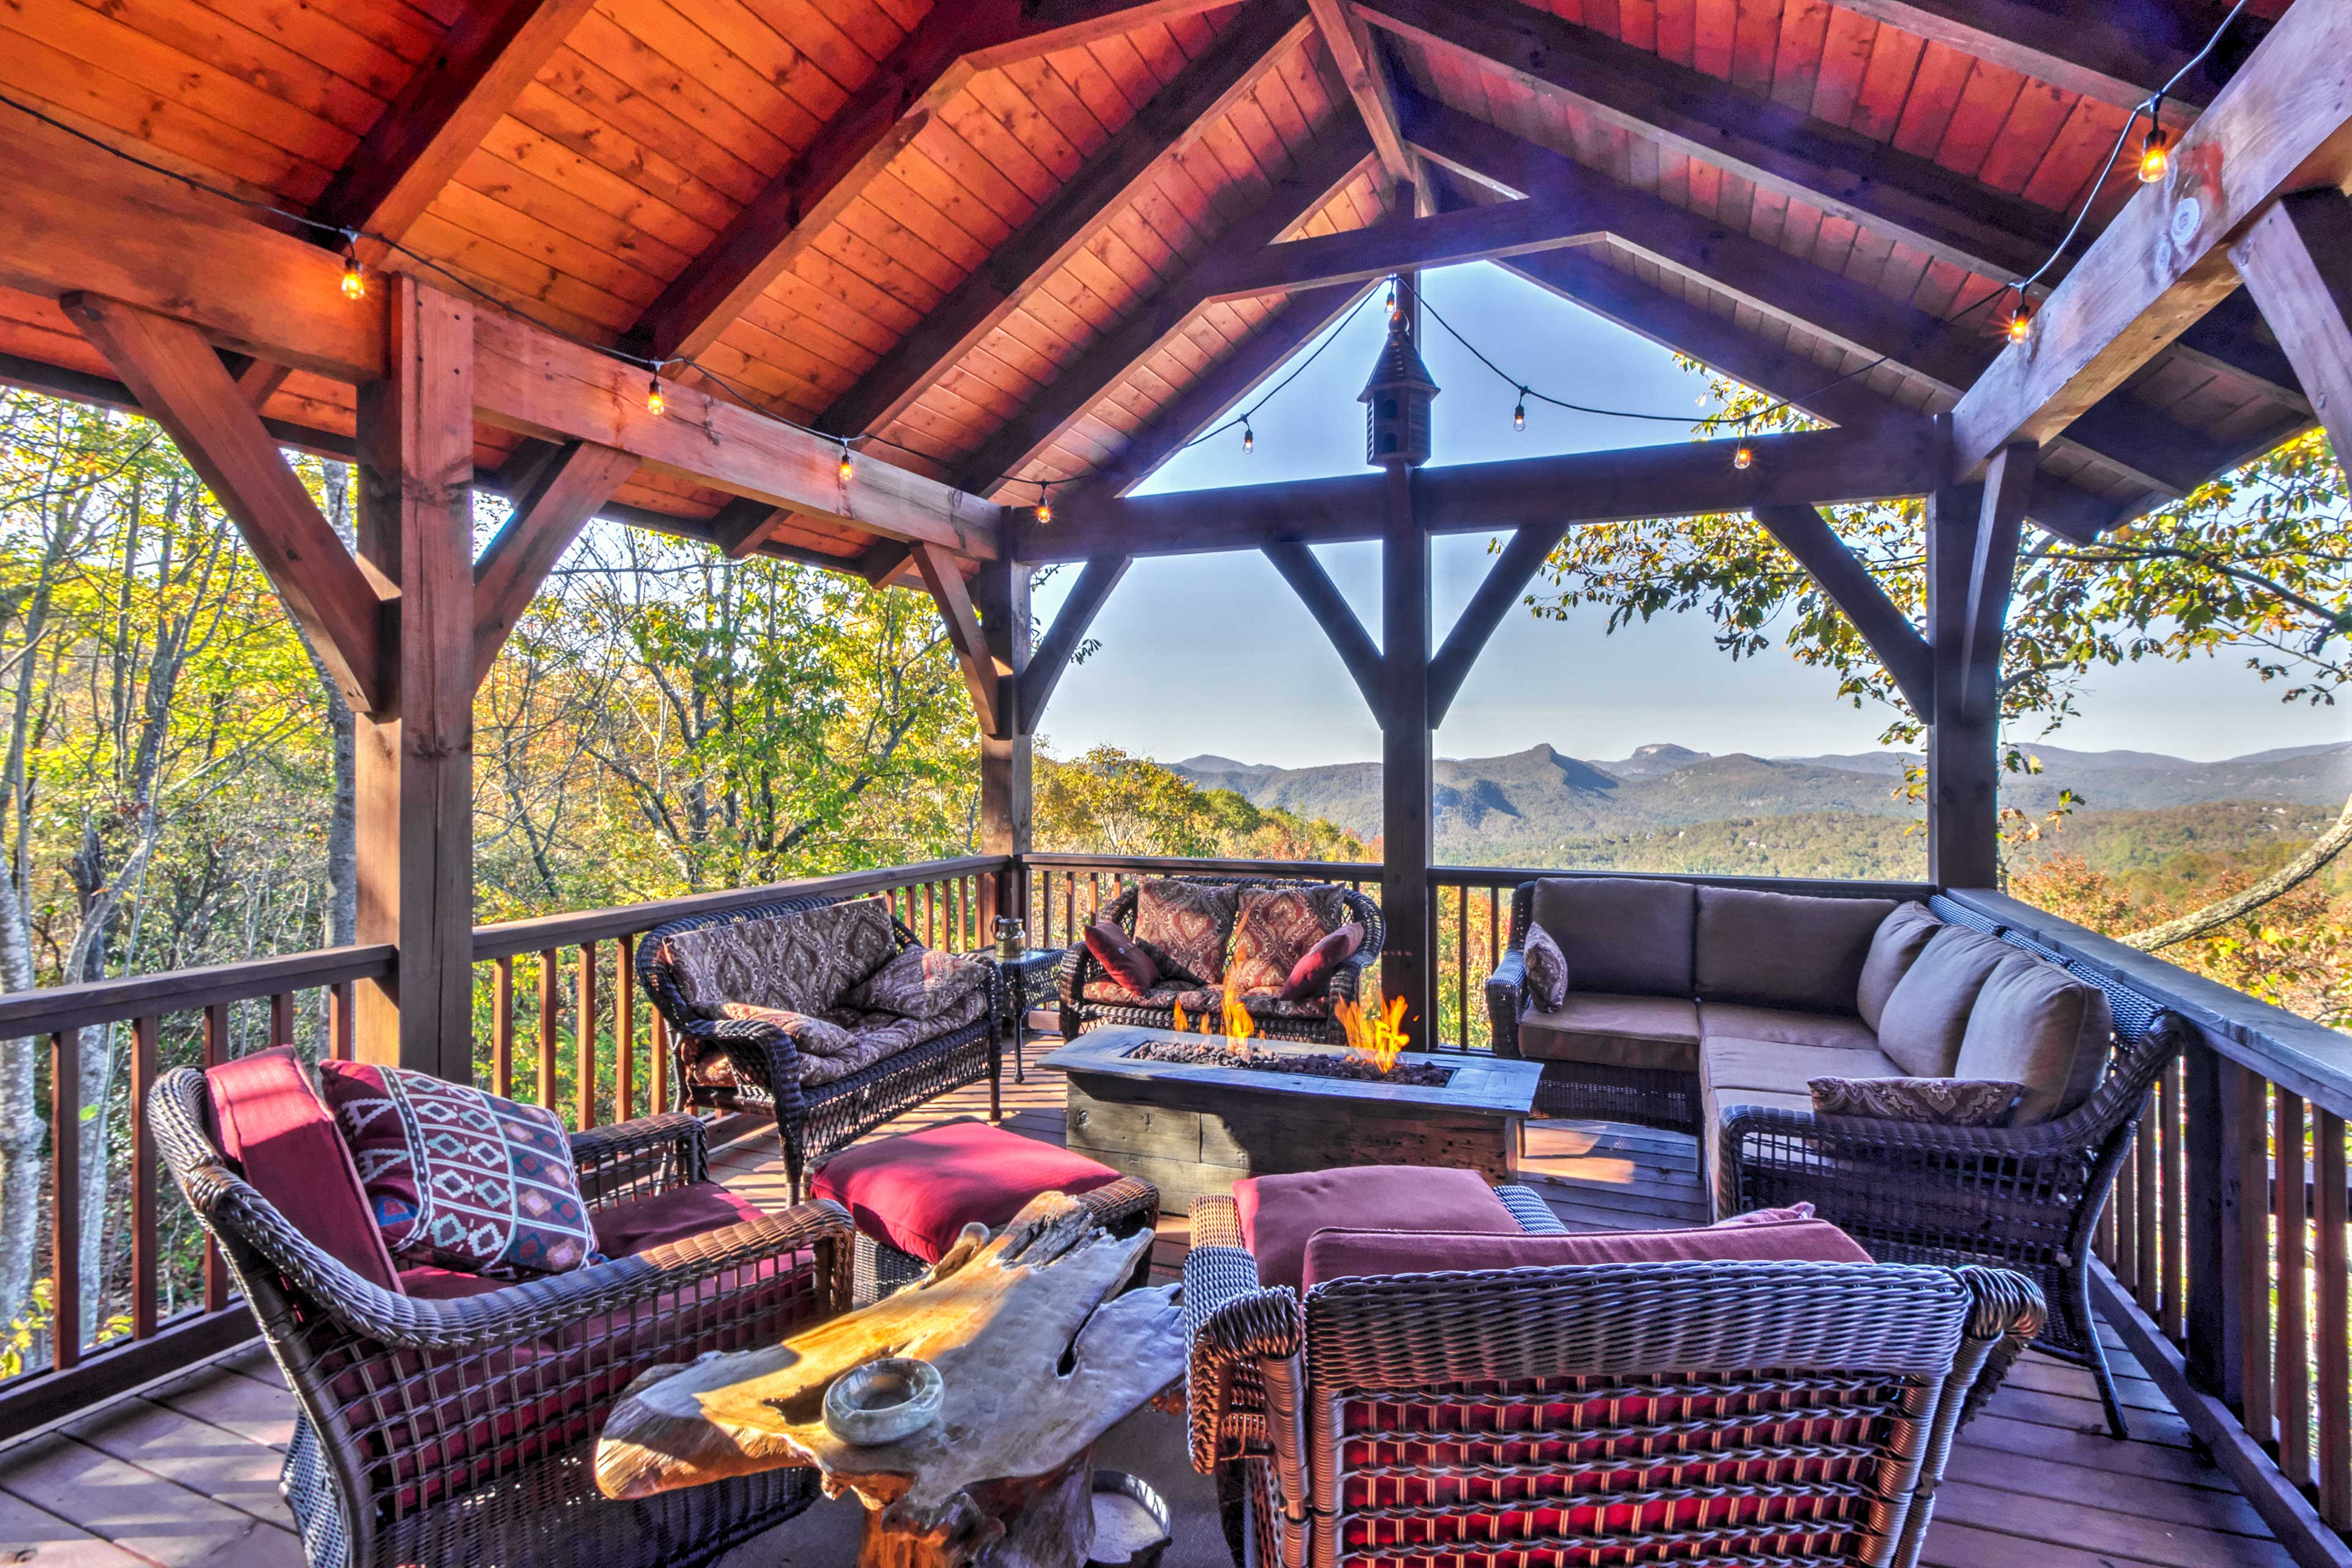 End your days in this serene space with majestic views.